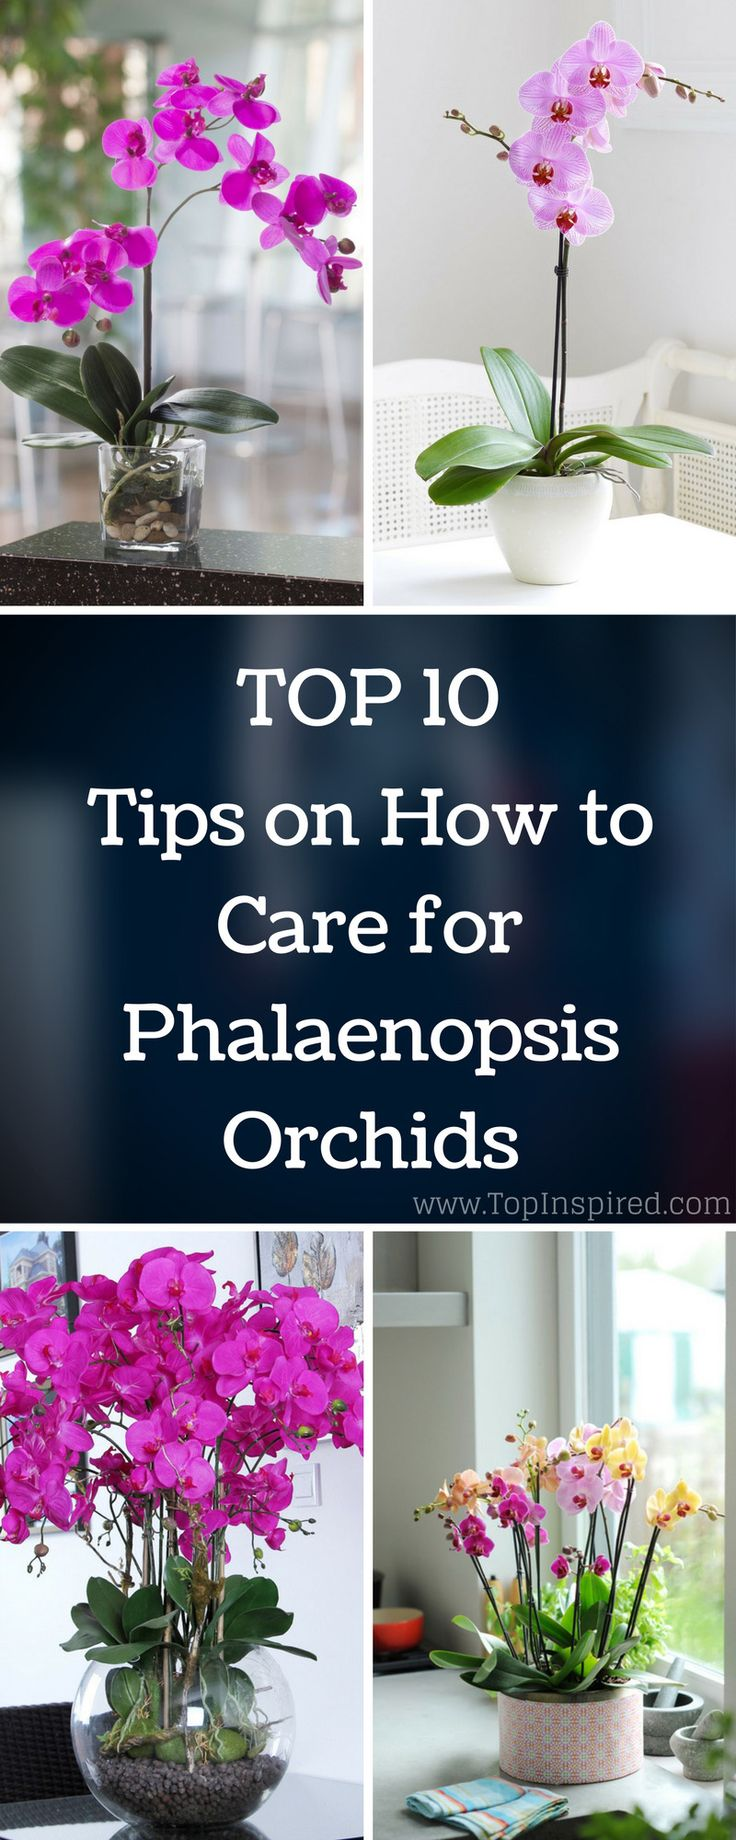 Through 10 easy tips on how to care for Phalaenopsis Orchids, you will learn…